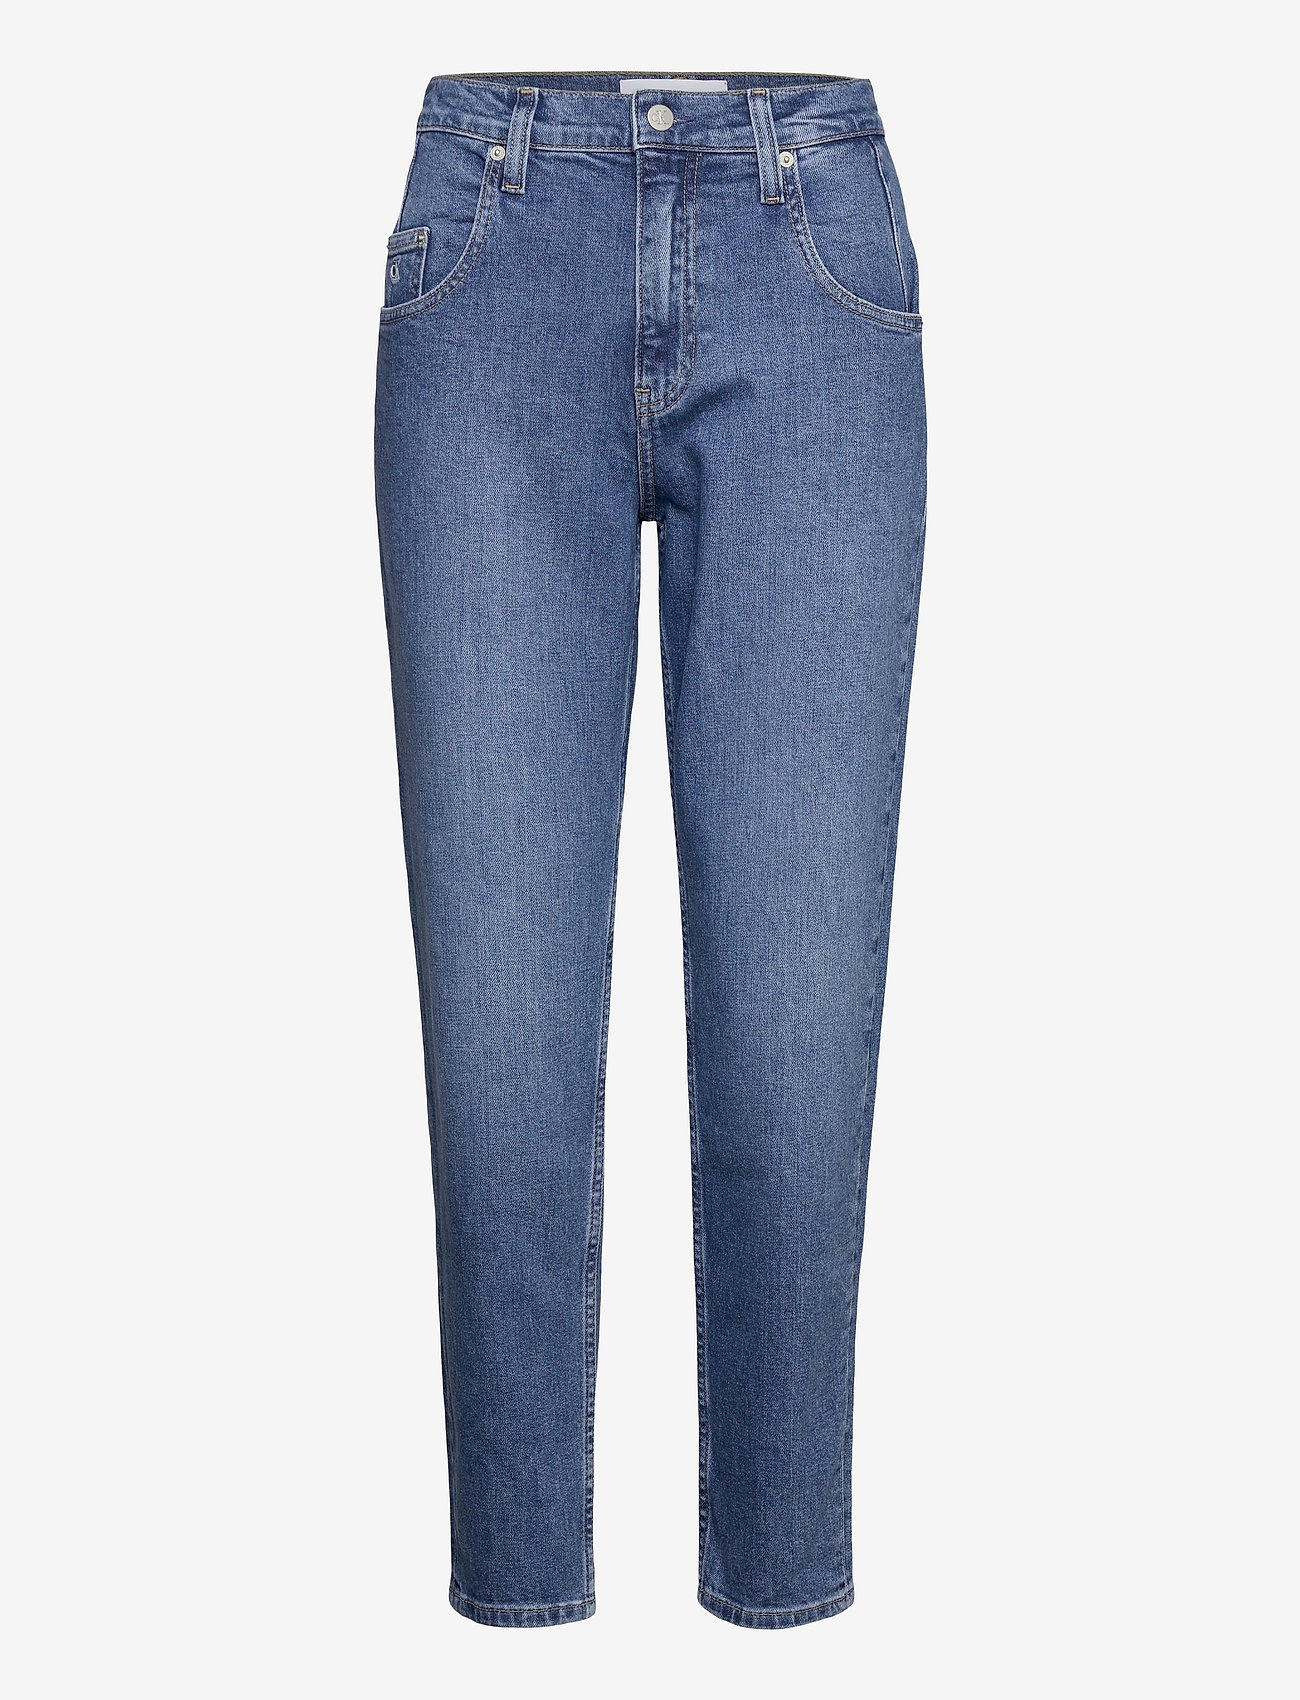 Calvin Klein Jeans - MOM JEAN - mammajeans - denim medium - 0